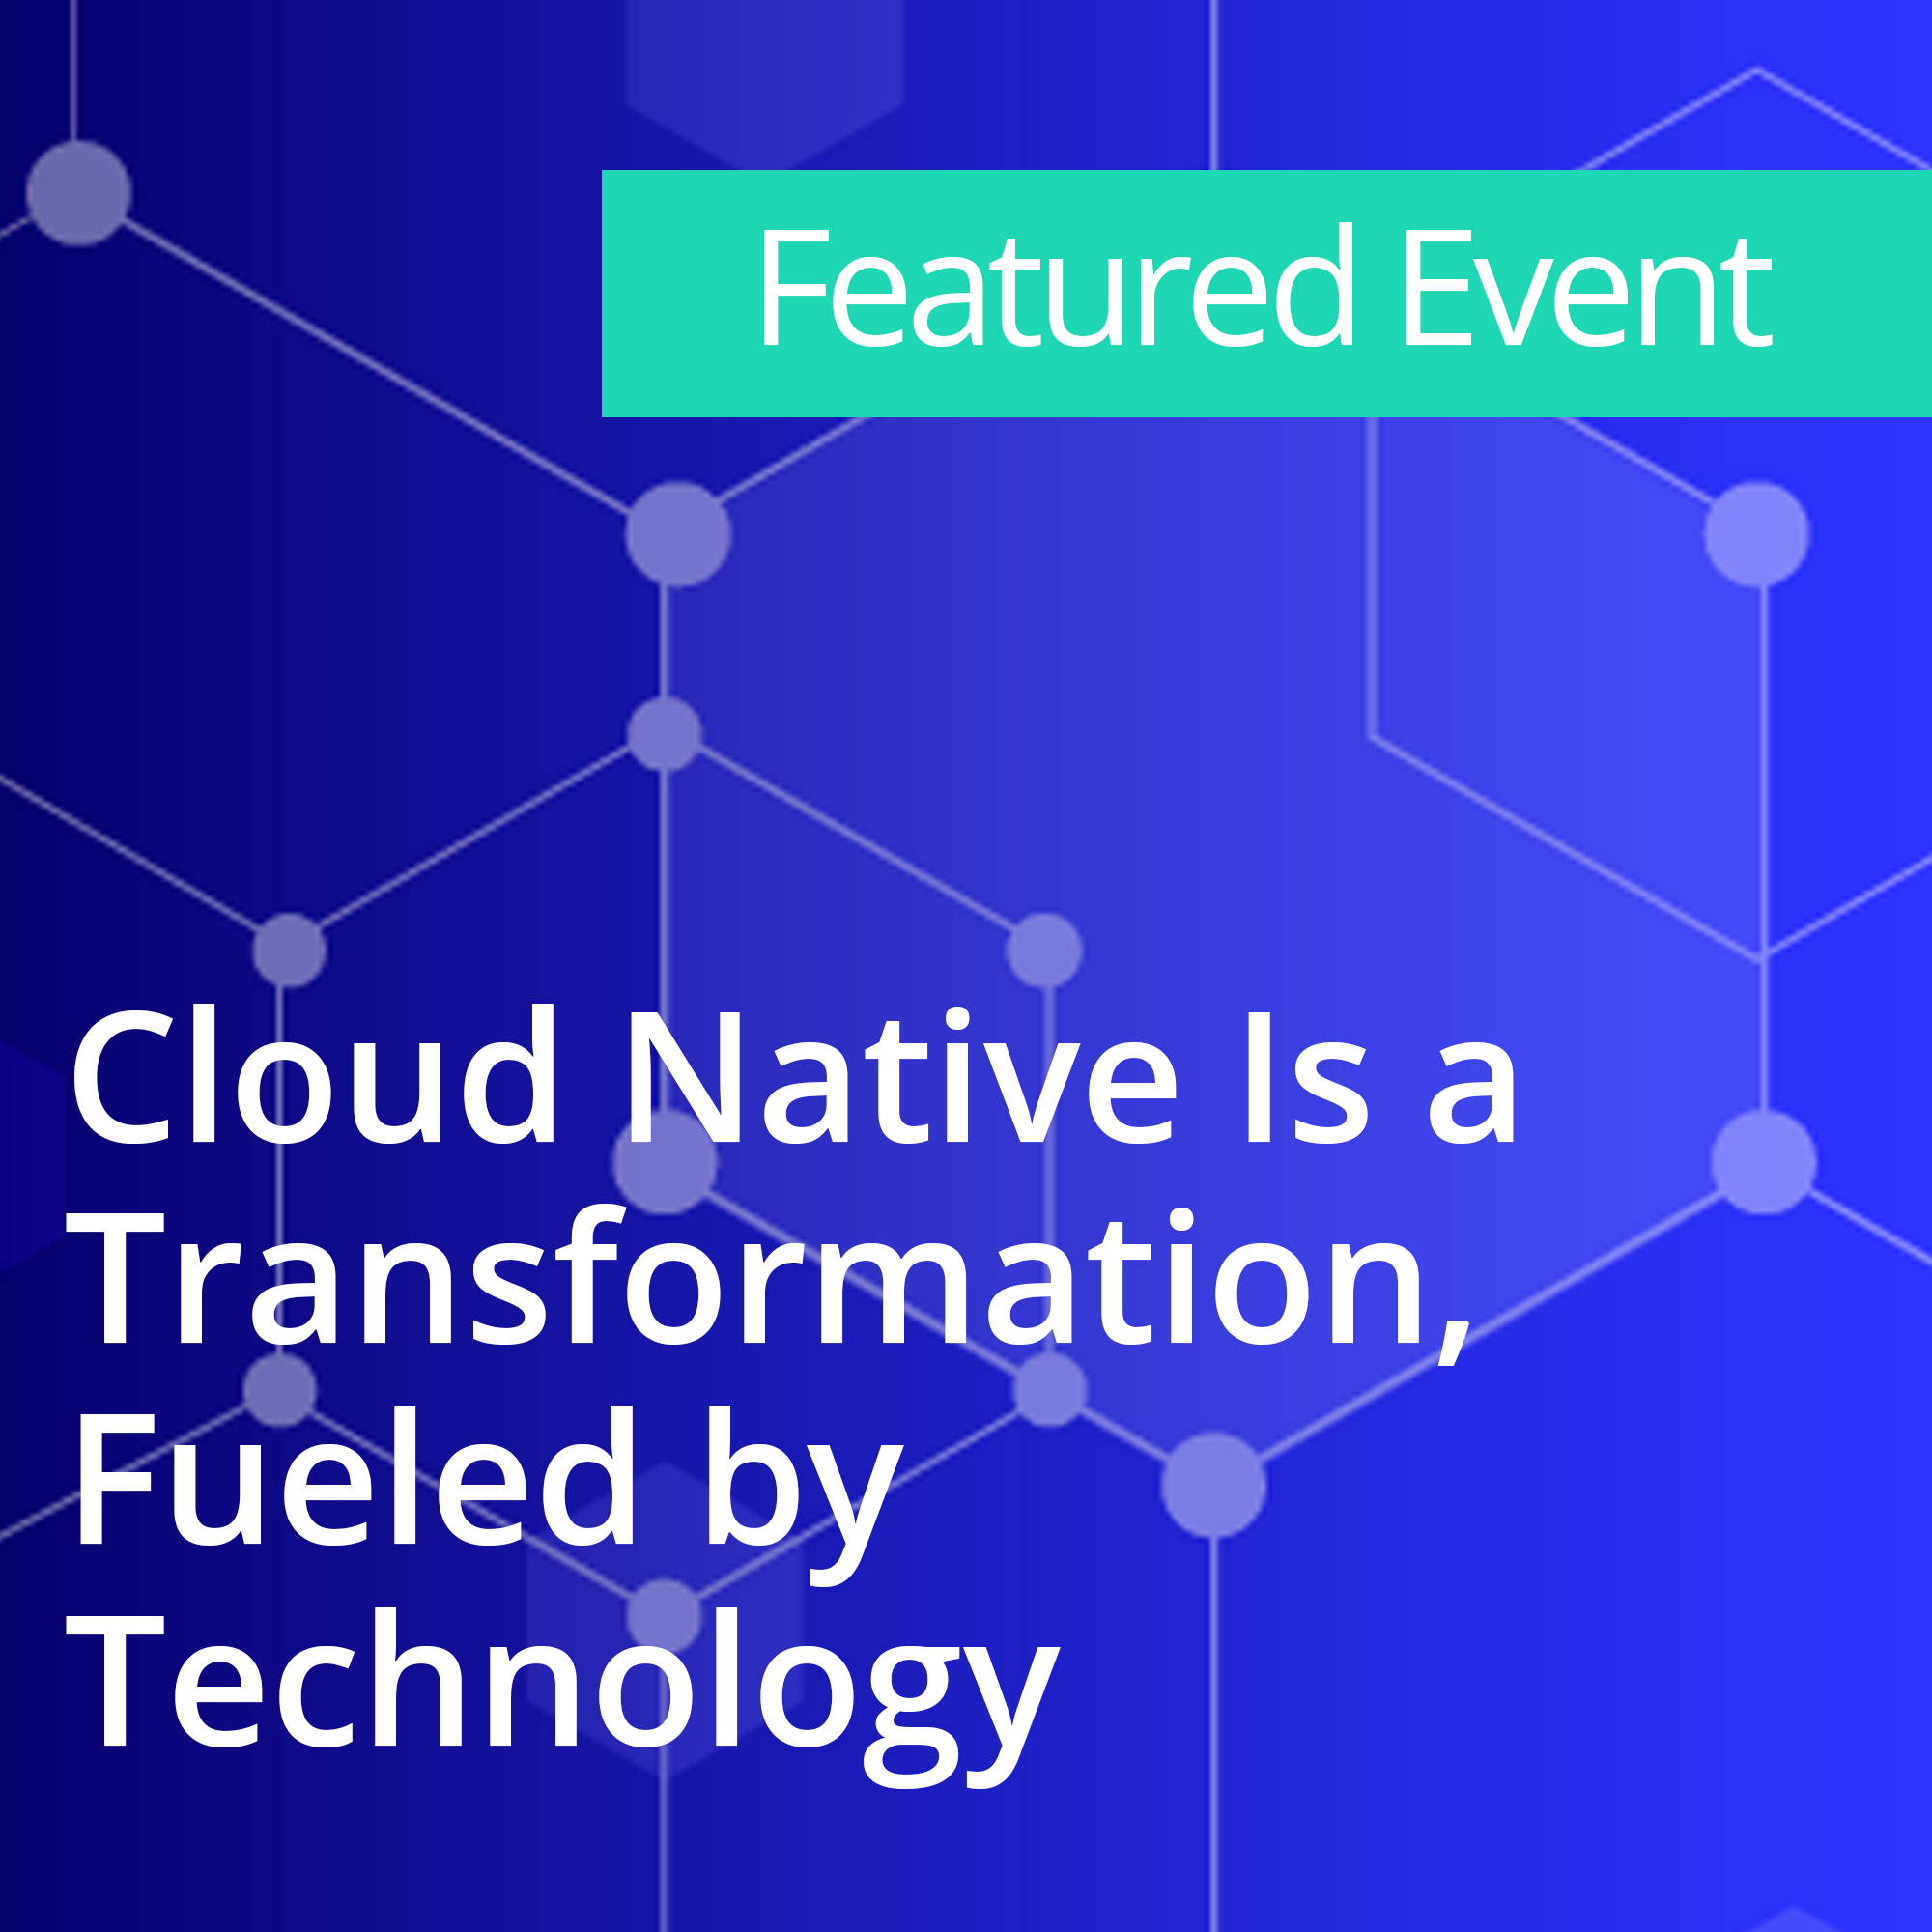 Cloud Native Is